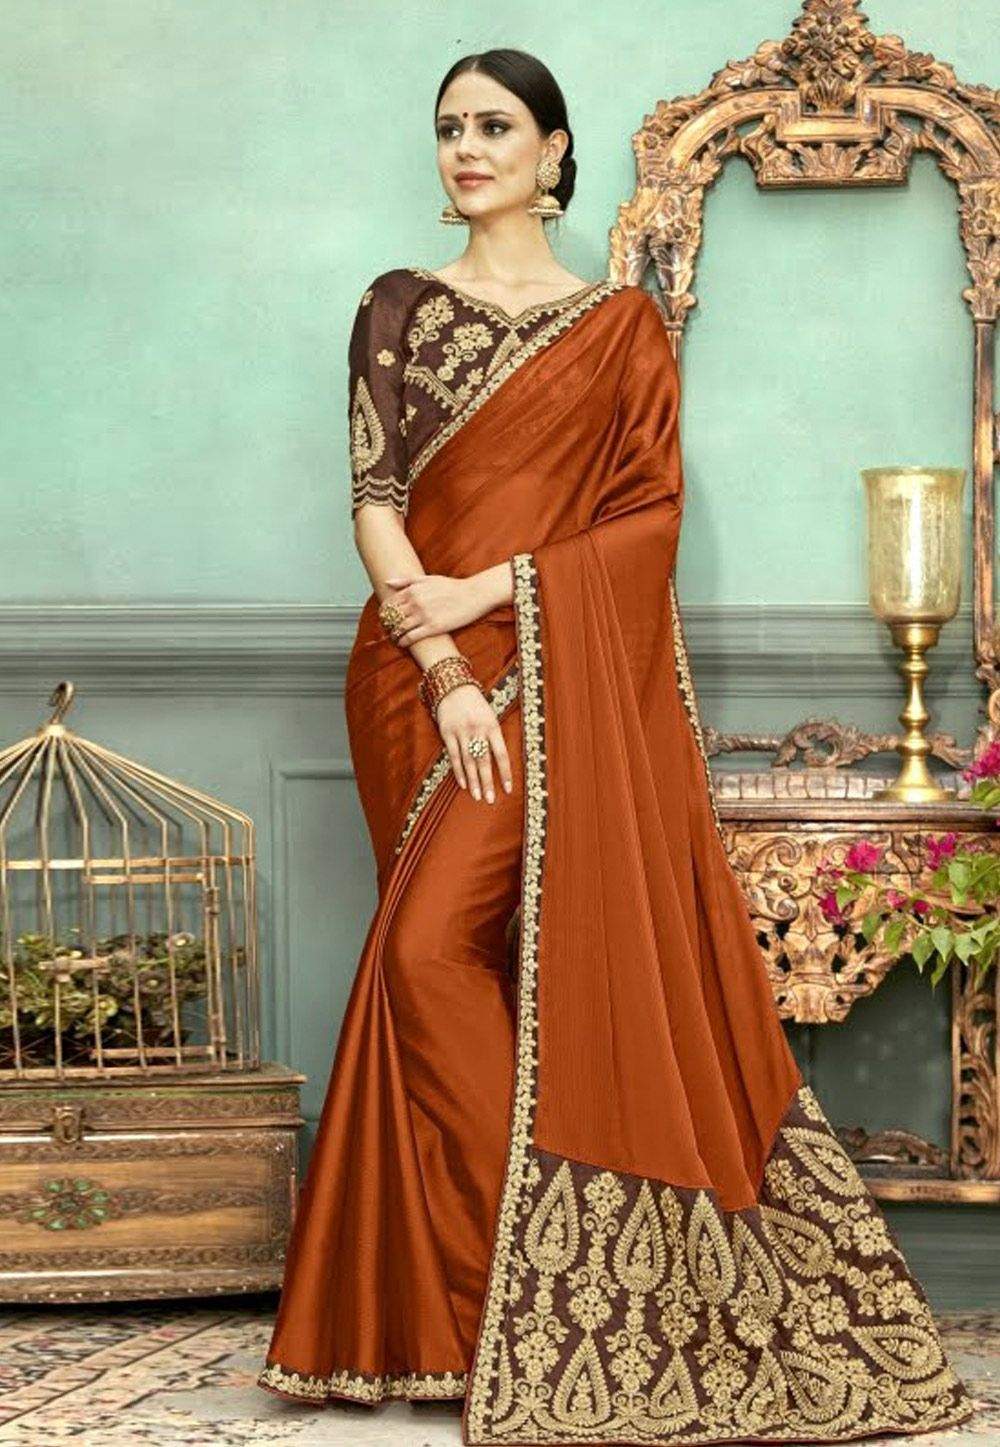 5aafc52d8270c7 Buy Rust Chanderi Silk Festival Wear Saree 153759 with blouse online at  lowest price from vast